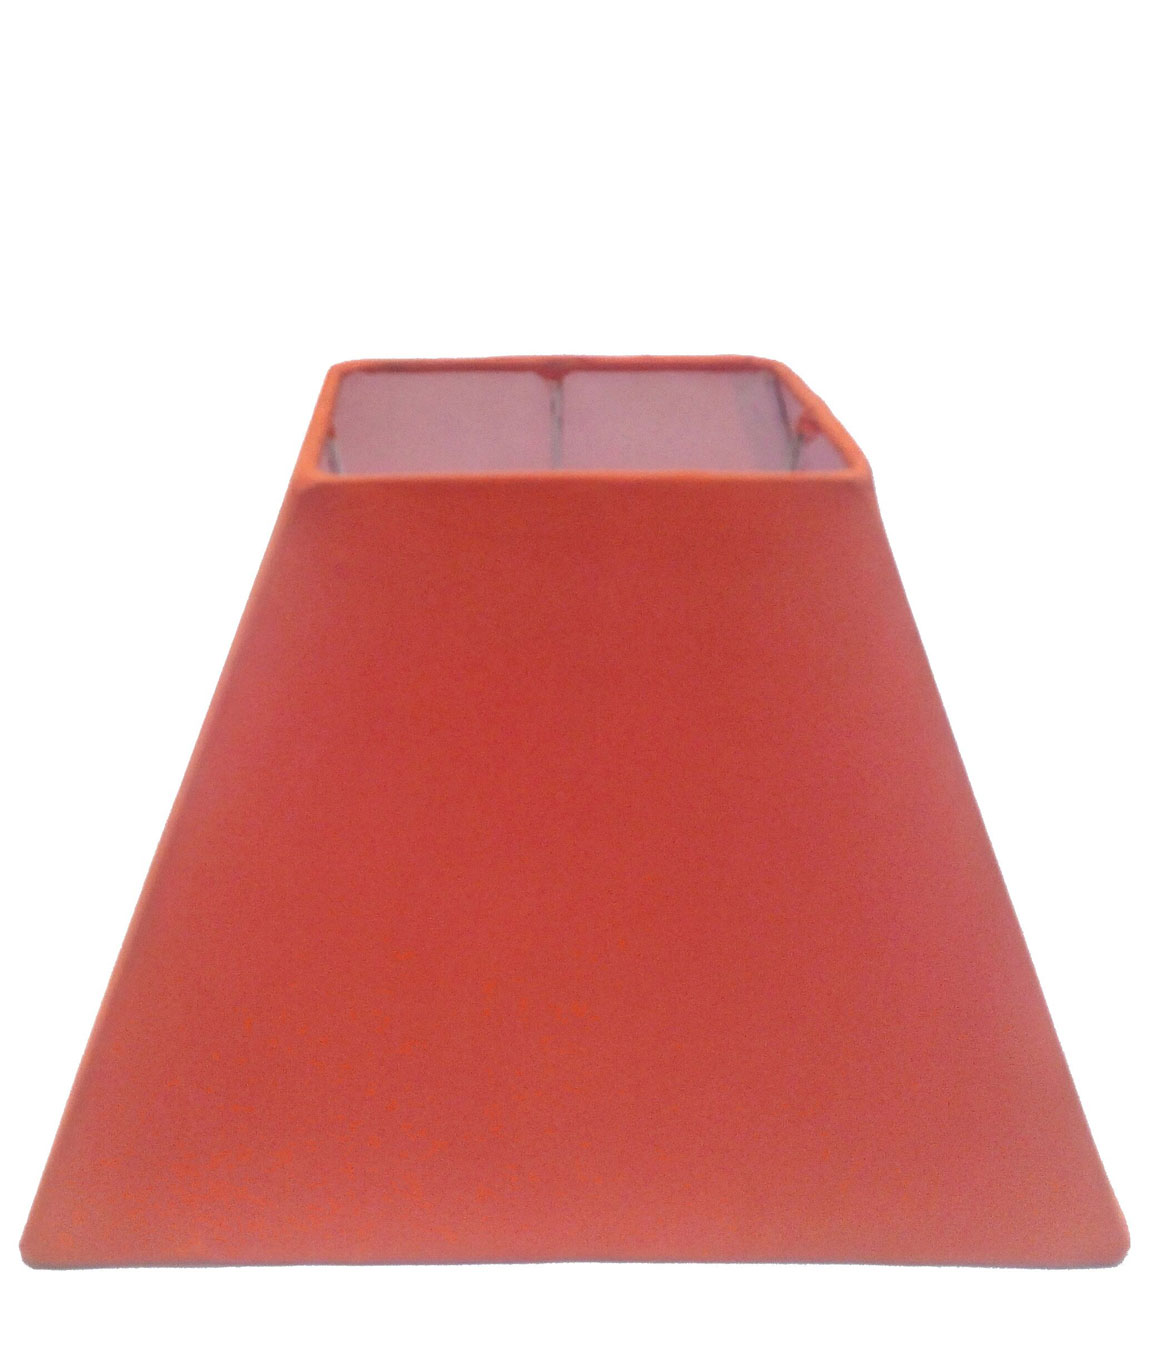 RDC 8 Inches Square Plain Orange Lamp Shade for Table Lamp